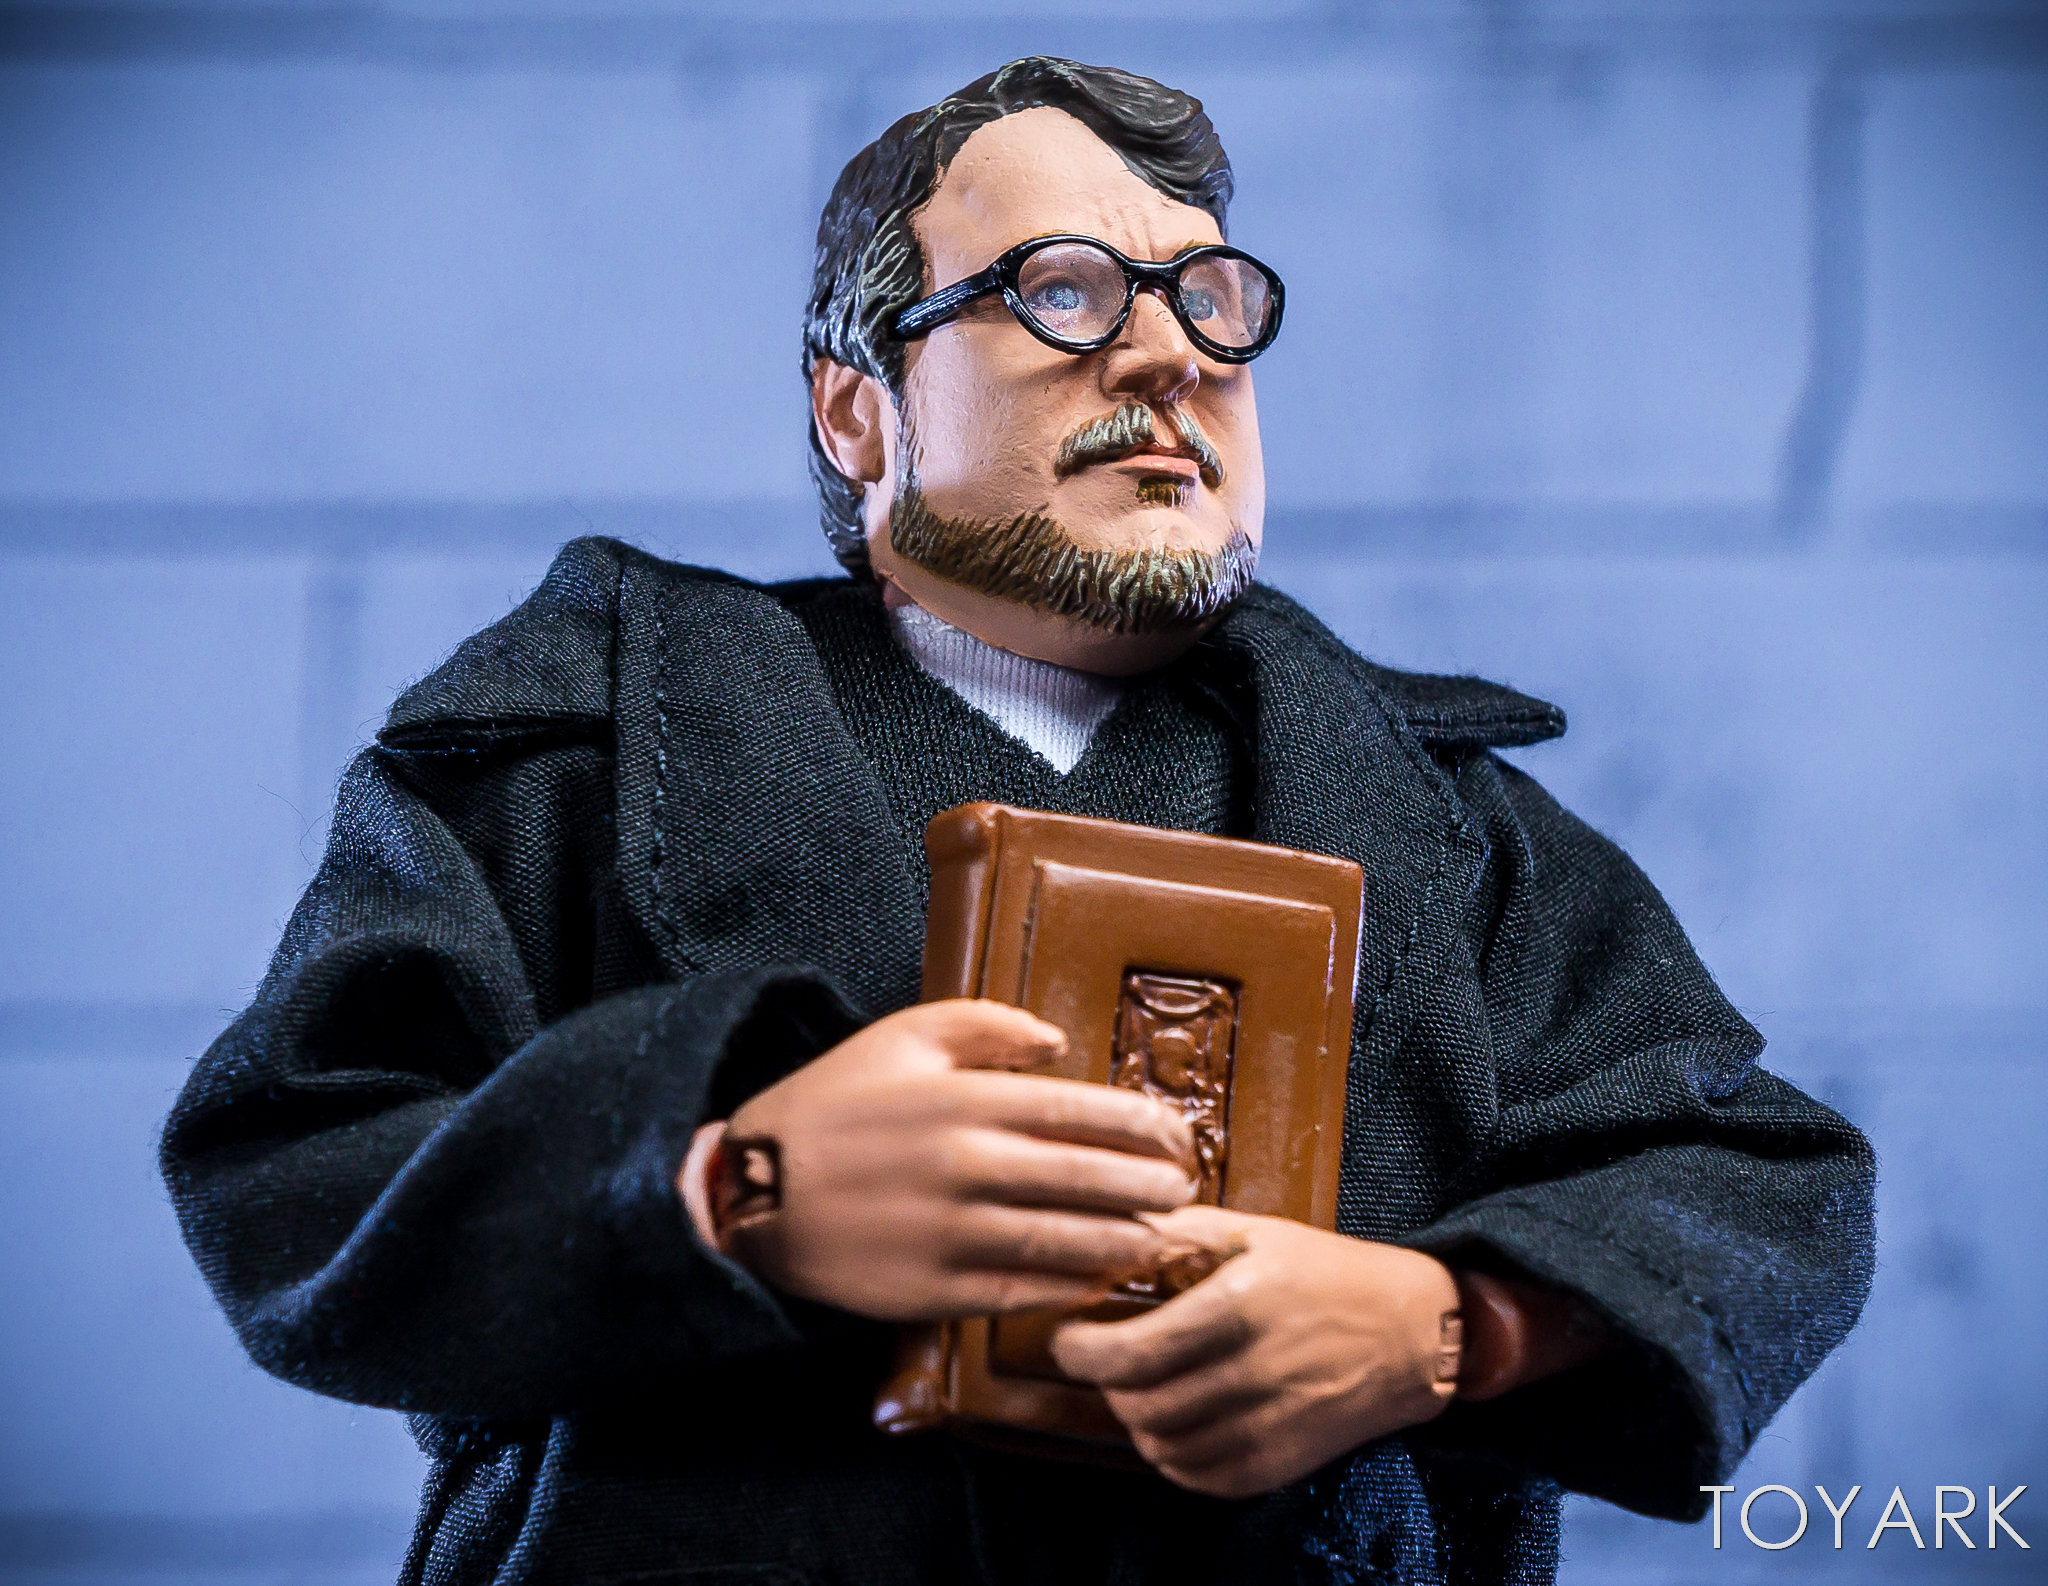 https://news.toyark.com/wp-content/uploads/sites/4/2018/07/NECA-Guillermo-del-Toro-SDCC-Figure-016.jpg